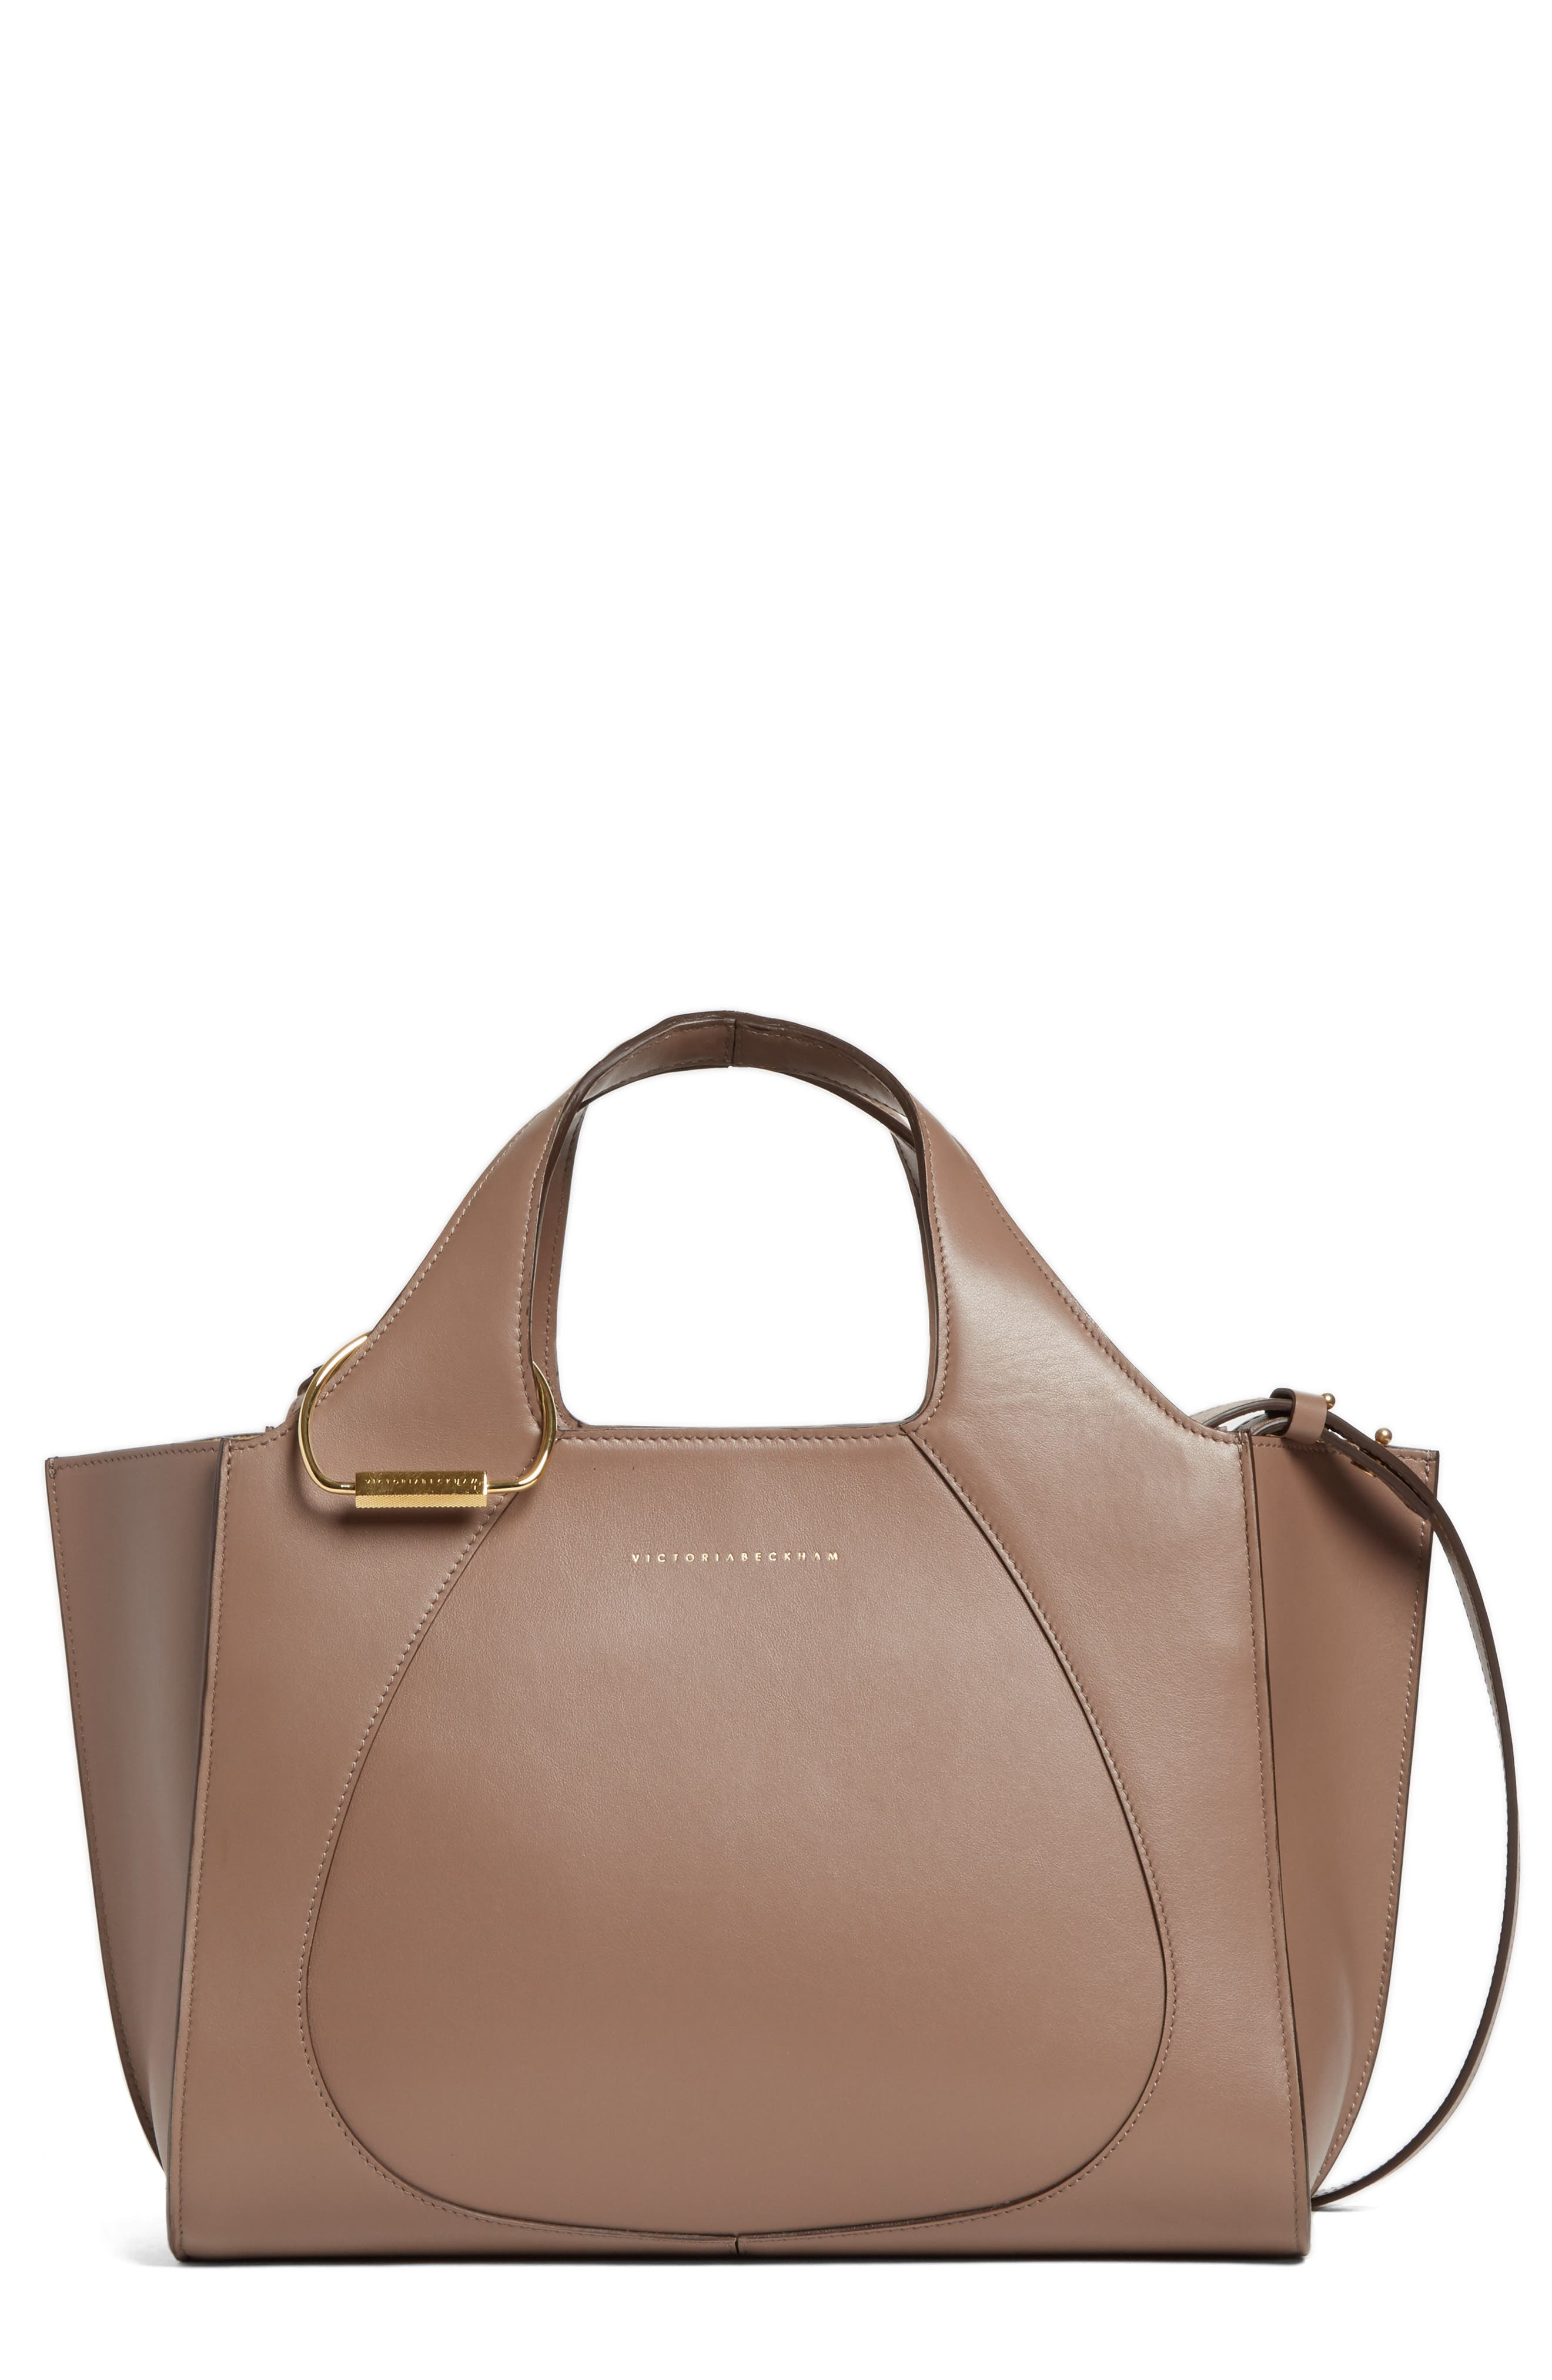 Main Image - Victoria Beckham Small Newspaper Leather Tote